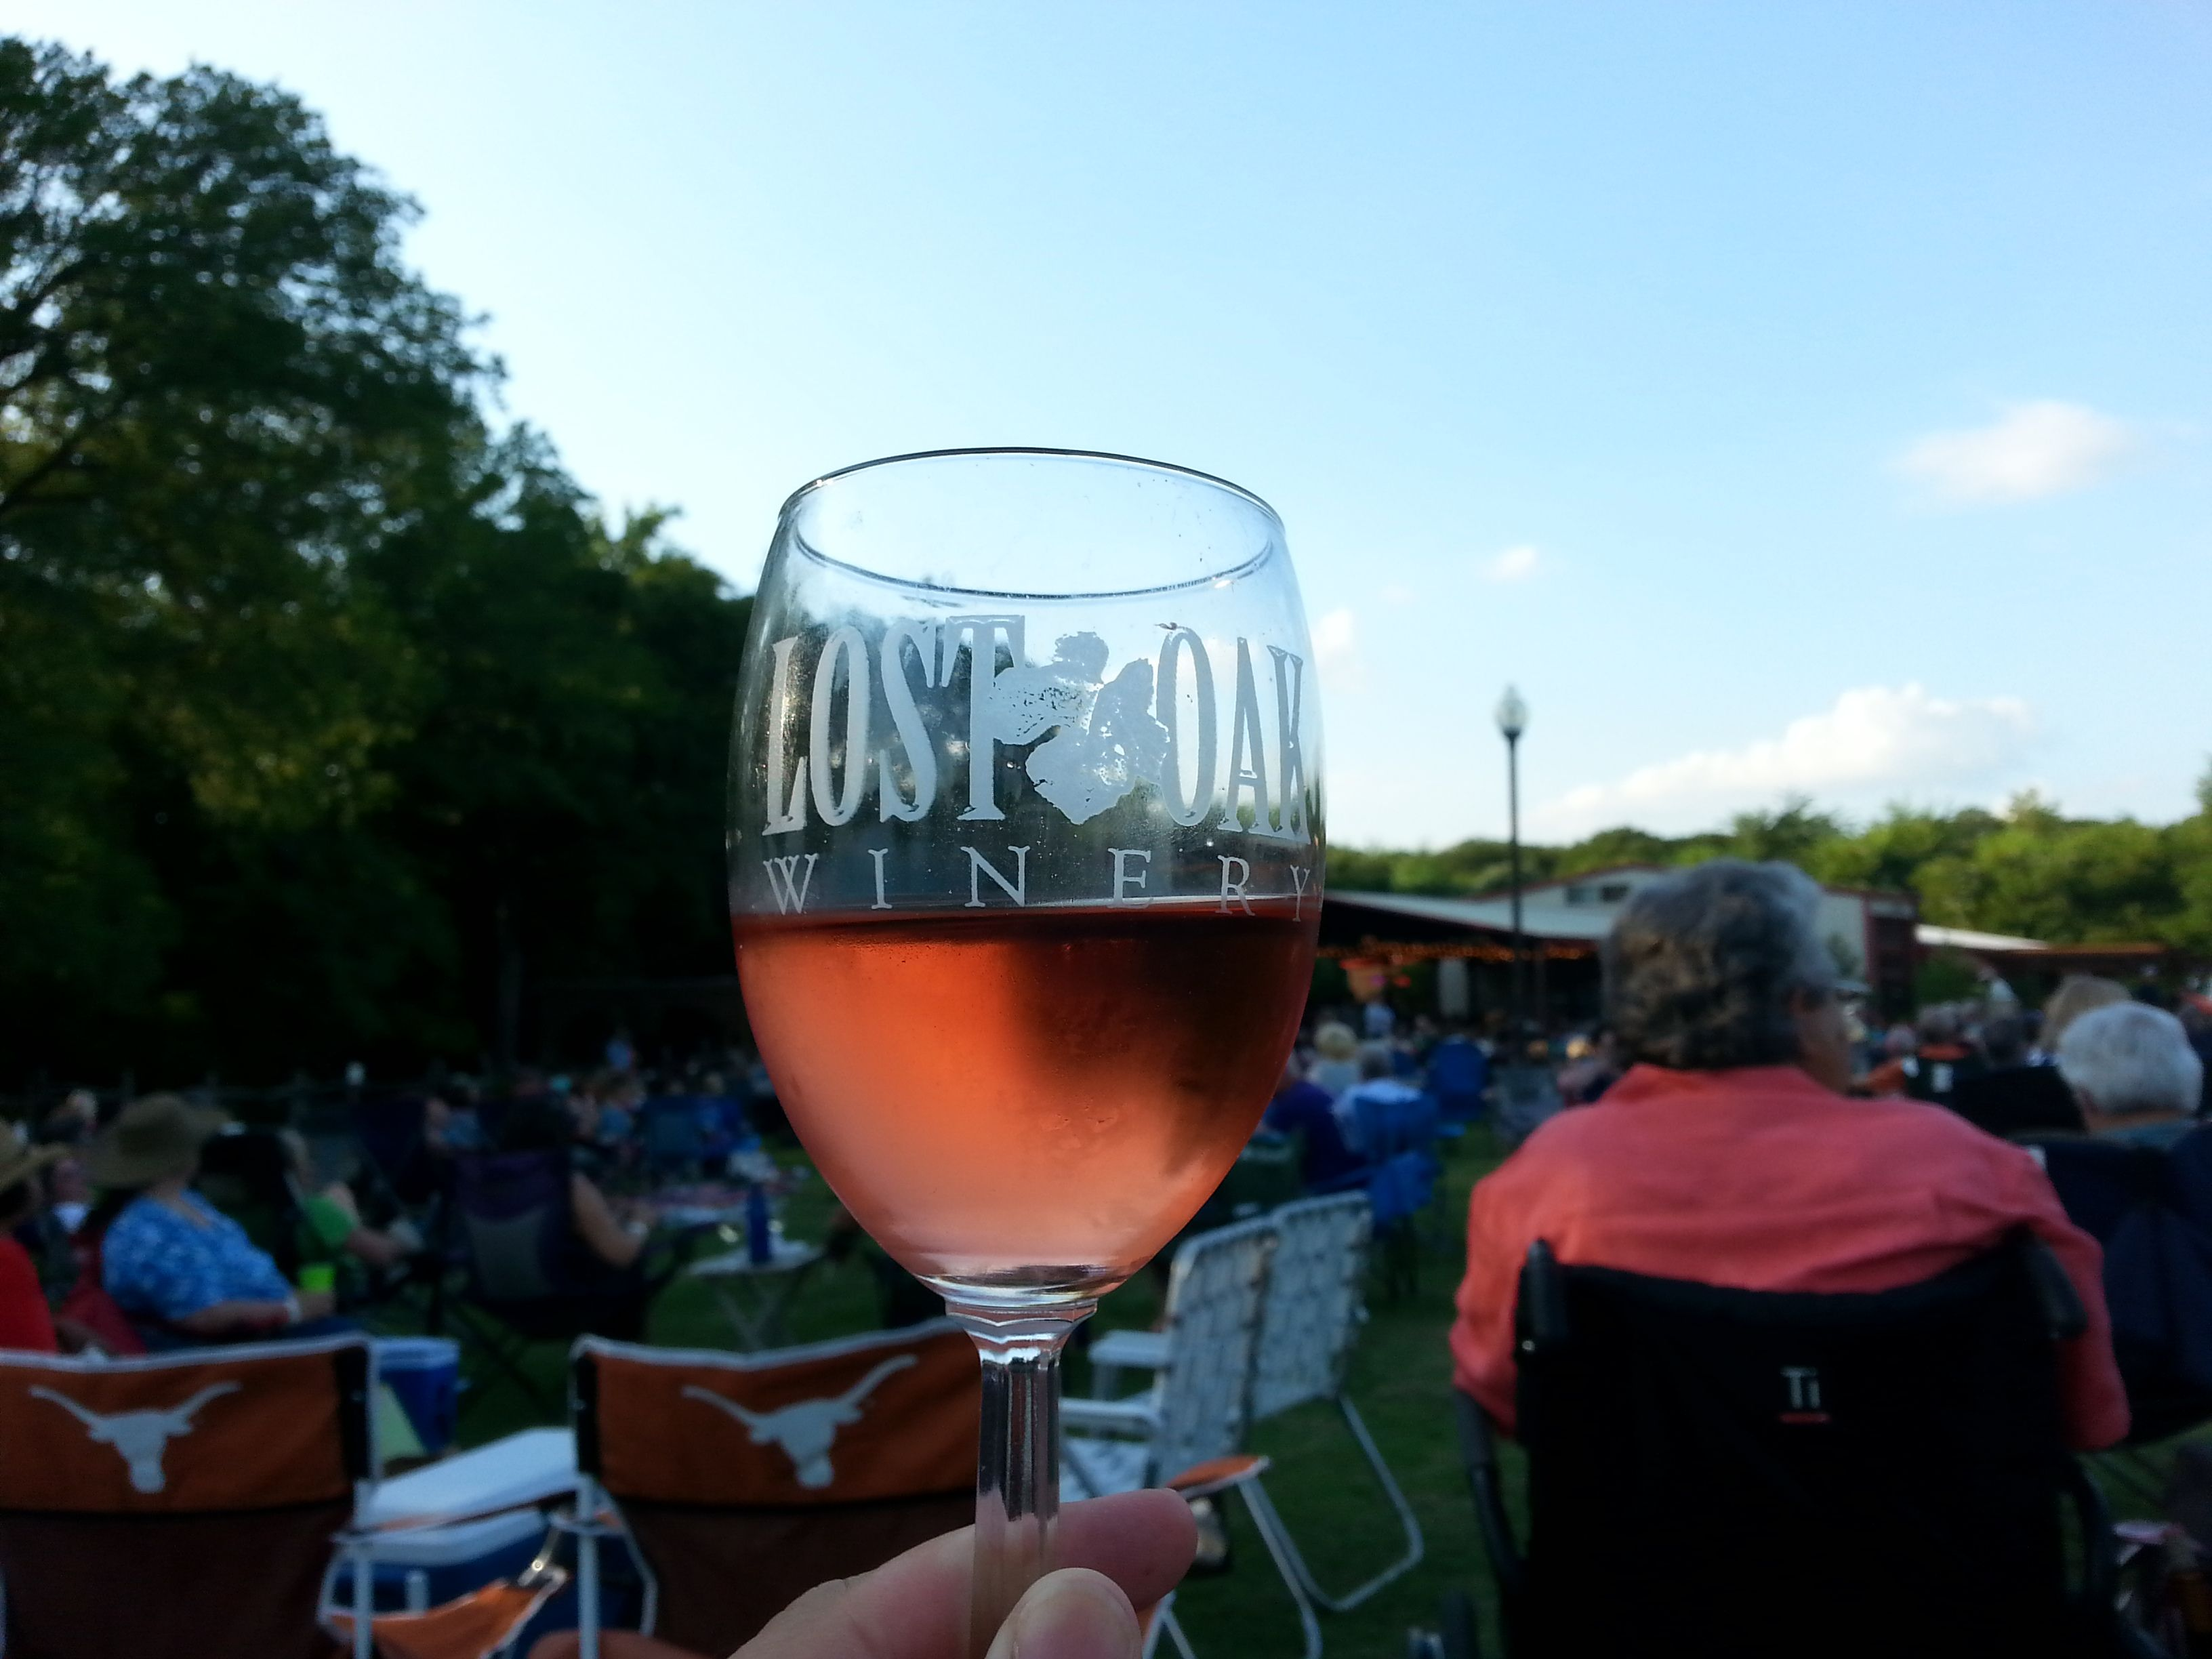 We enjoyed this Rosa Blanca while listening to the sounds of Motown at Lost Oak Winery. #txwine